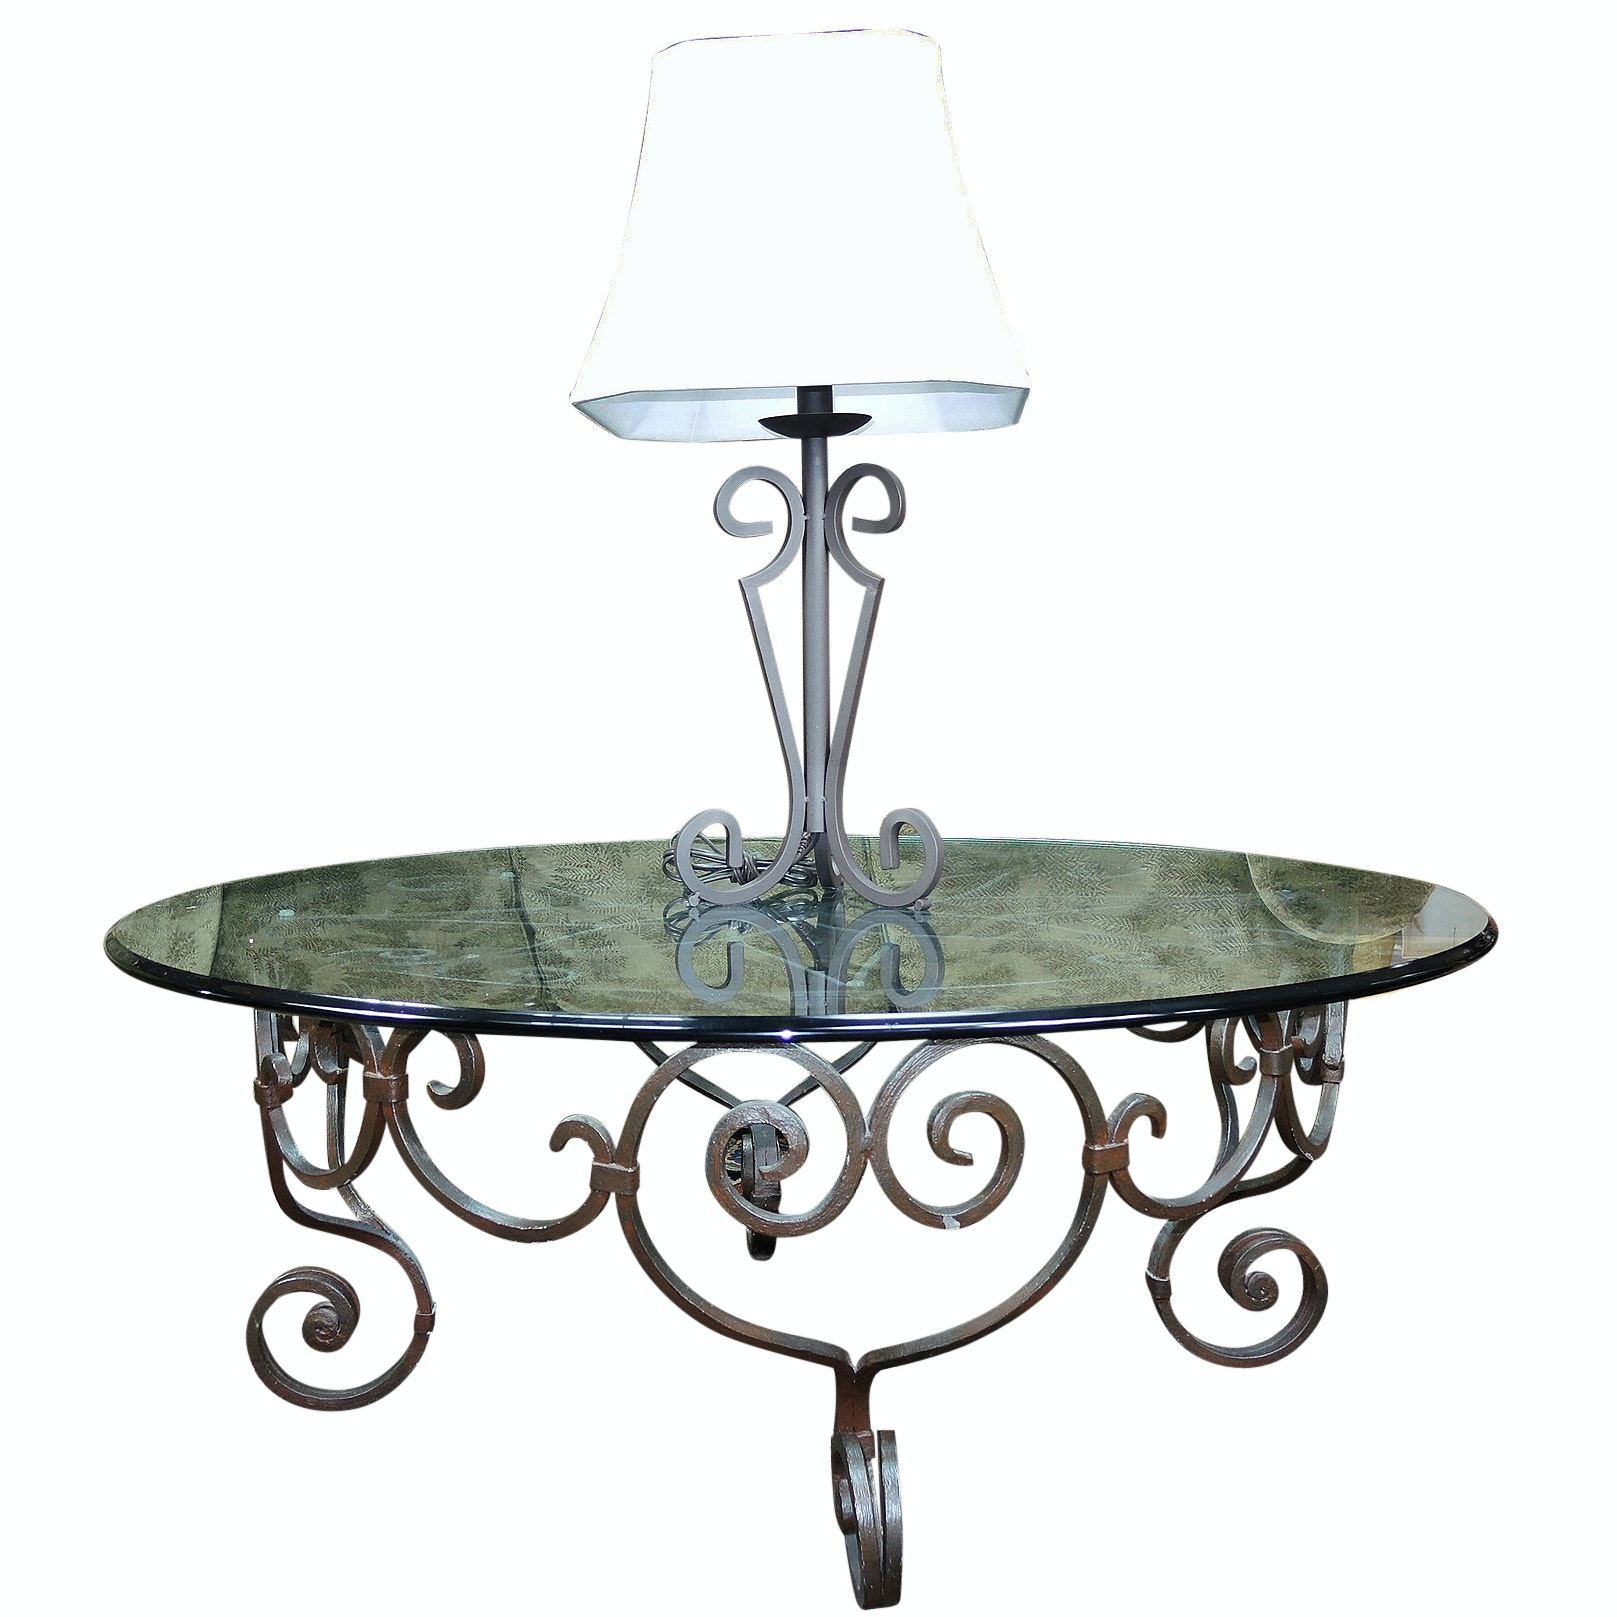 Scrolled Metal Table and Lamp